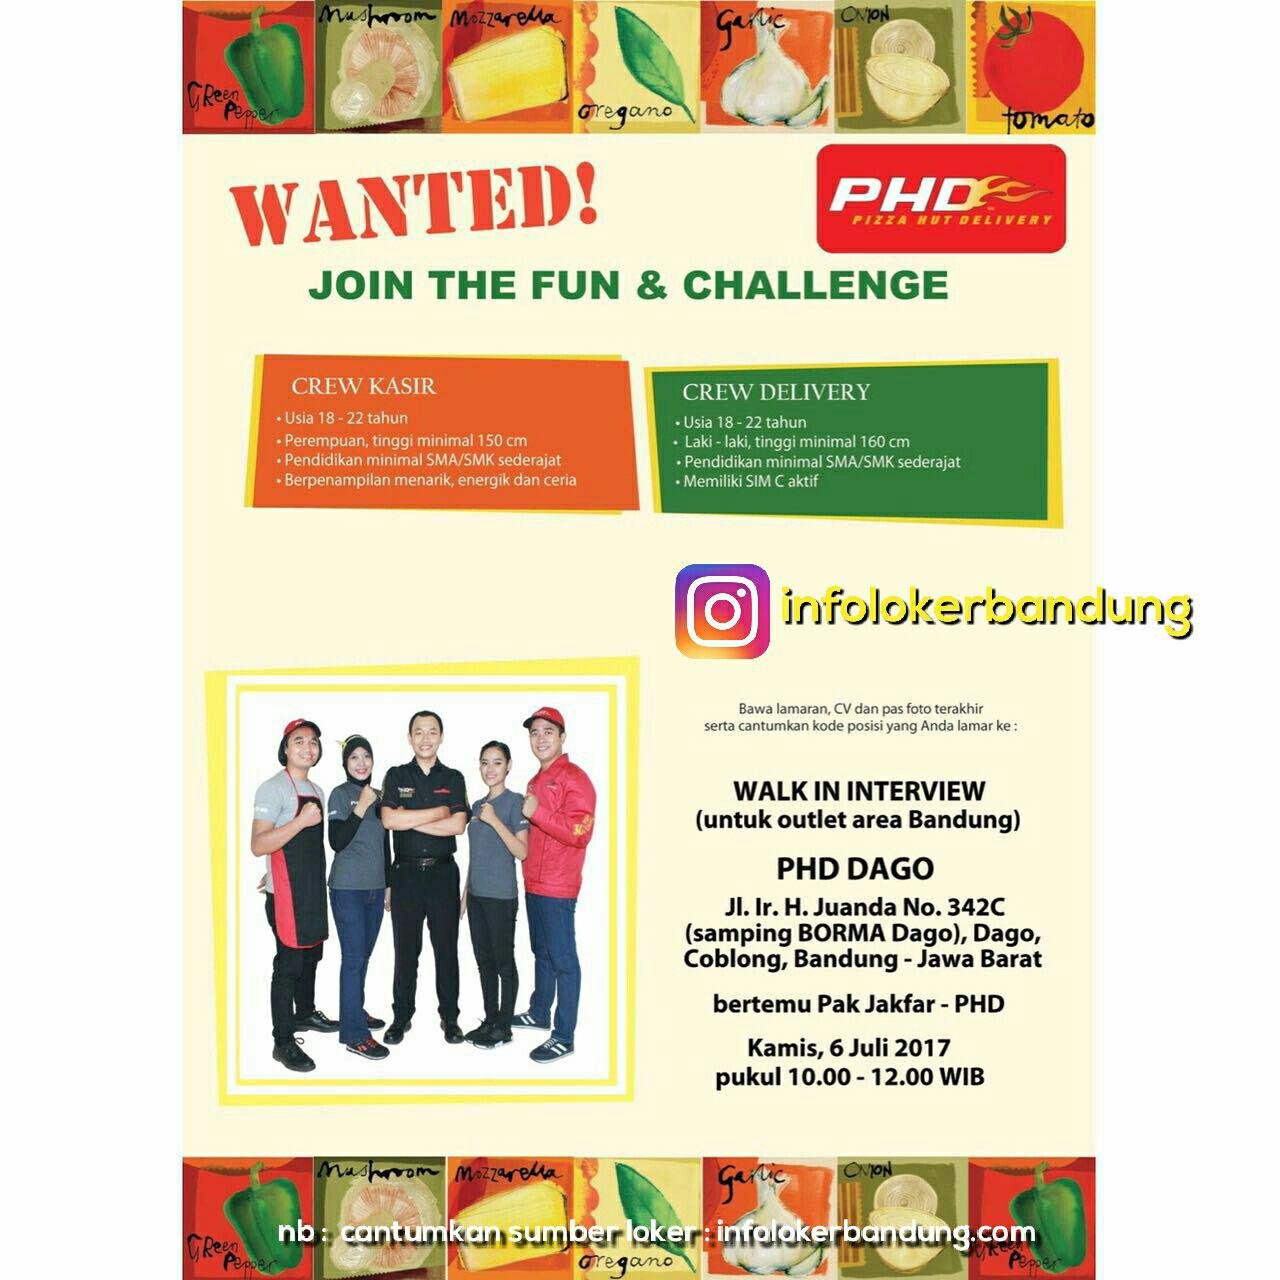 Walk In Interview Pizza Hut Delivery ( PHD ) Dago Bandung Juli 2017